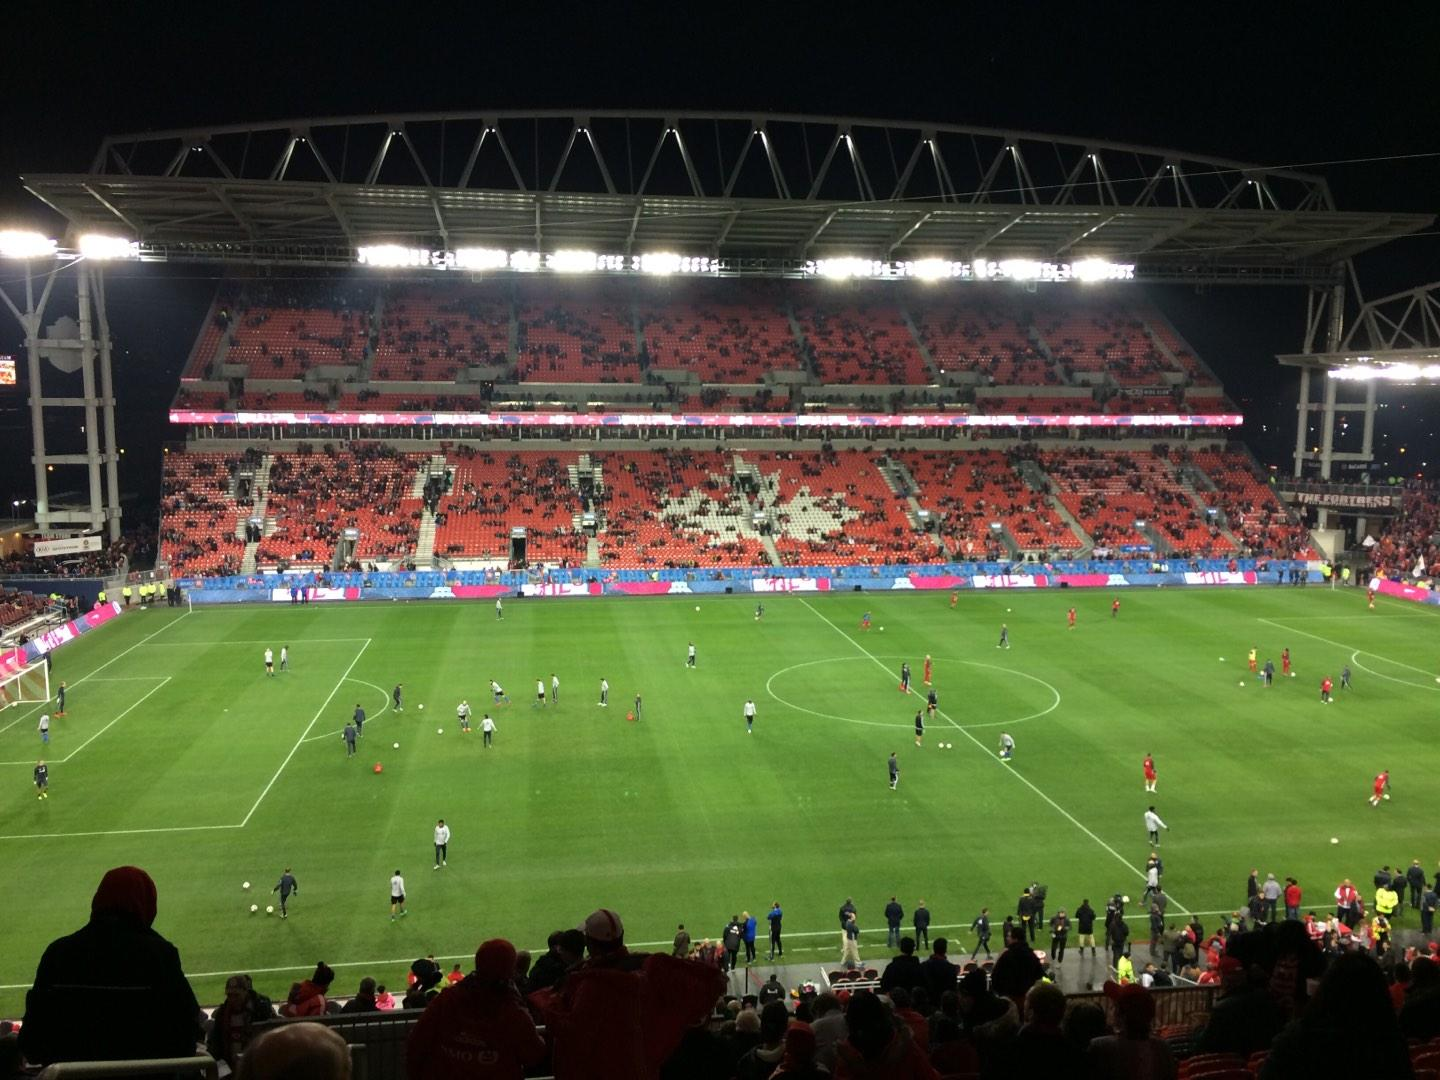 BMO Field Section 224 Row 18 Seat 28